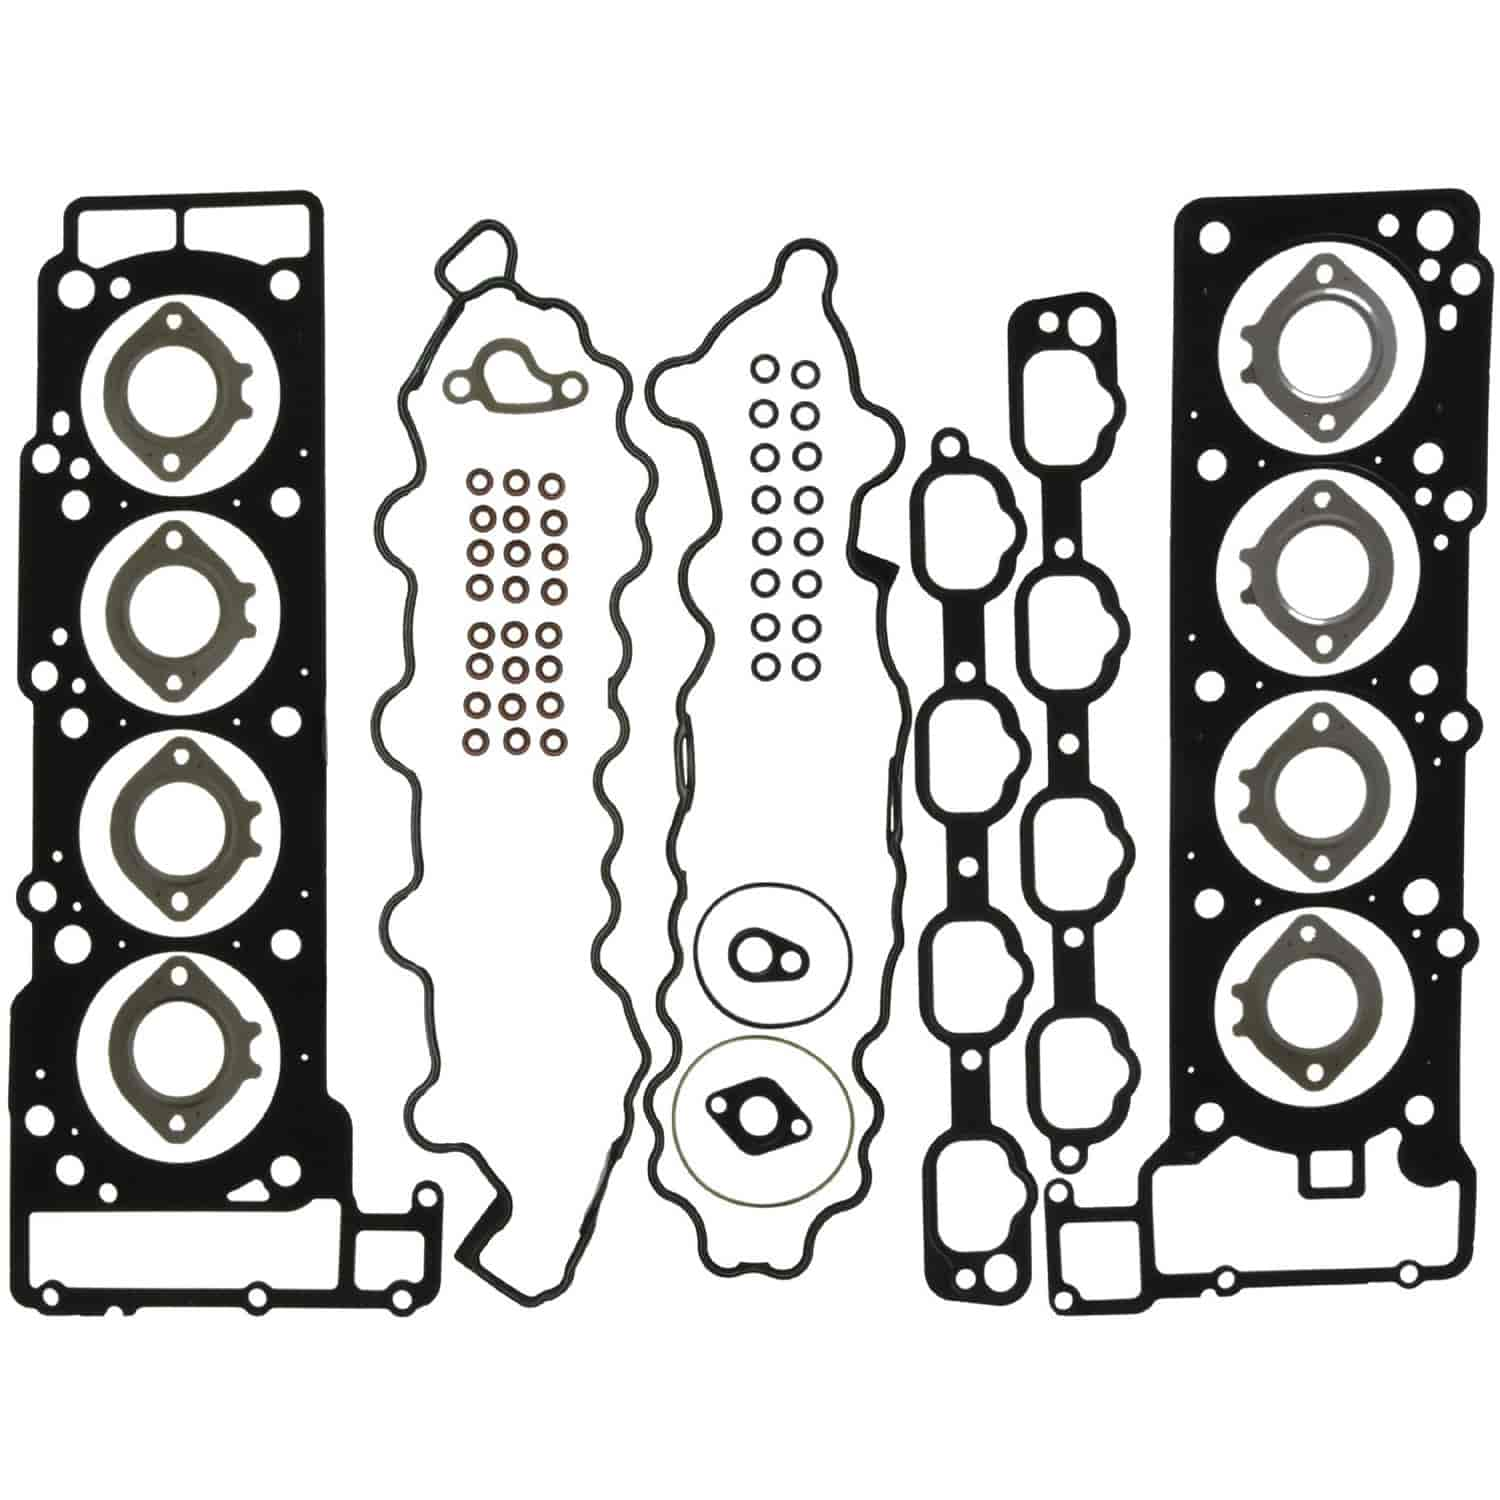 Blend Door Removal 2004 Hyundai Xg350 moreover 2013 Ford Edge Remote Start Wiring Diagram as well Chrysler Voyager Caravan Town Country additionally Replace Pinion Gear In A 2008 Chrysler Aspen together with 2012 Mazda Mazda6 Blower Motor Removal. on 2005 town country repair manual online